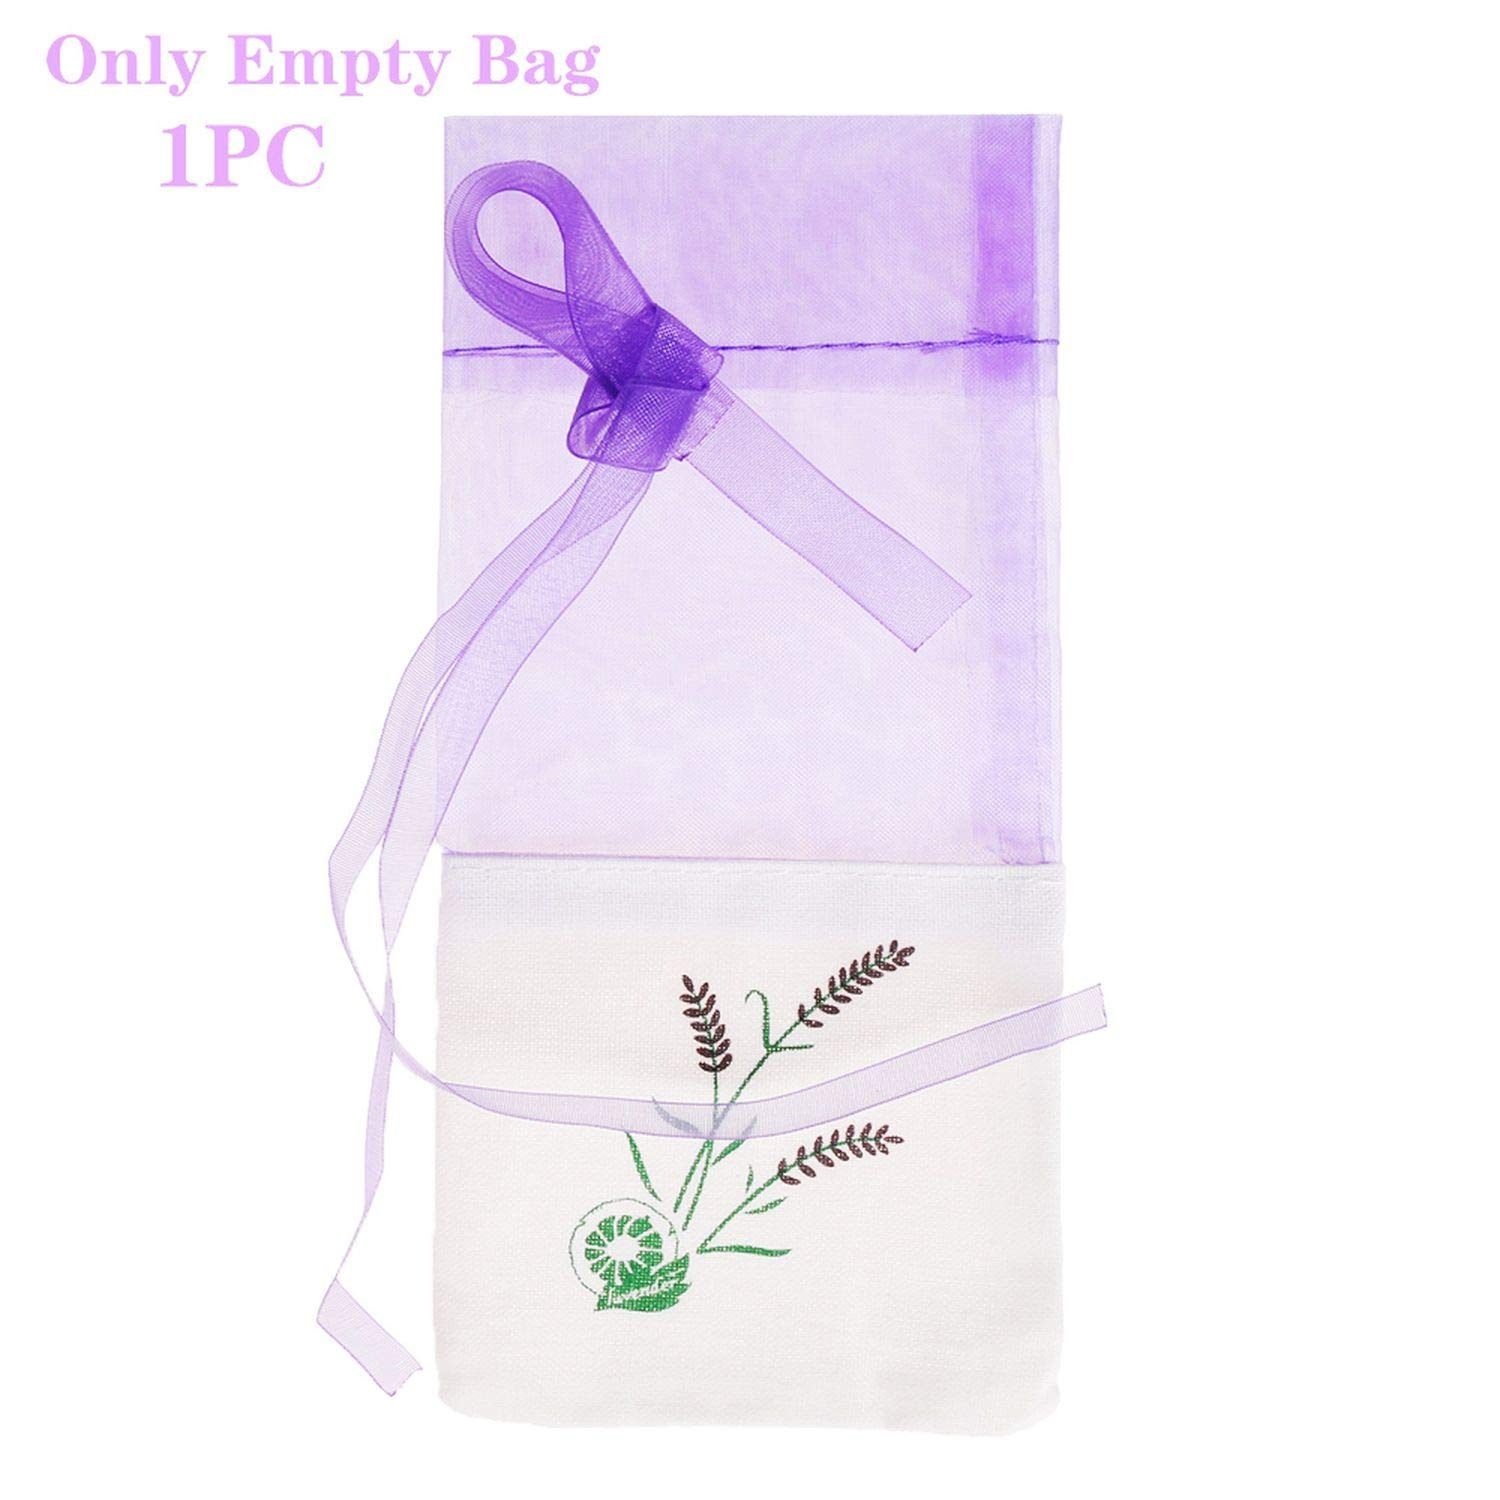 NICE-SHOW Natural Lavender Bud Dried Flower Bag Aromatic Household Car Lavender Air Fresheners, 1pc(Only Empty Bag)